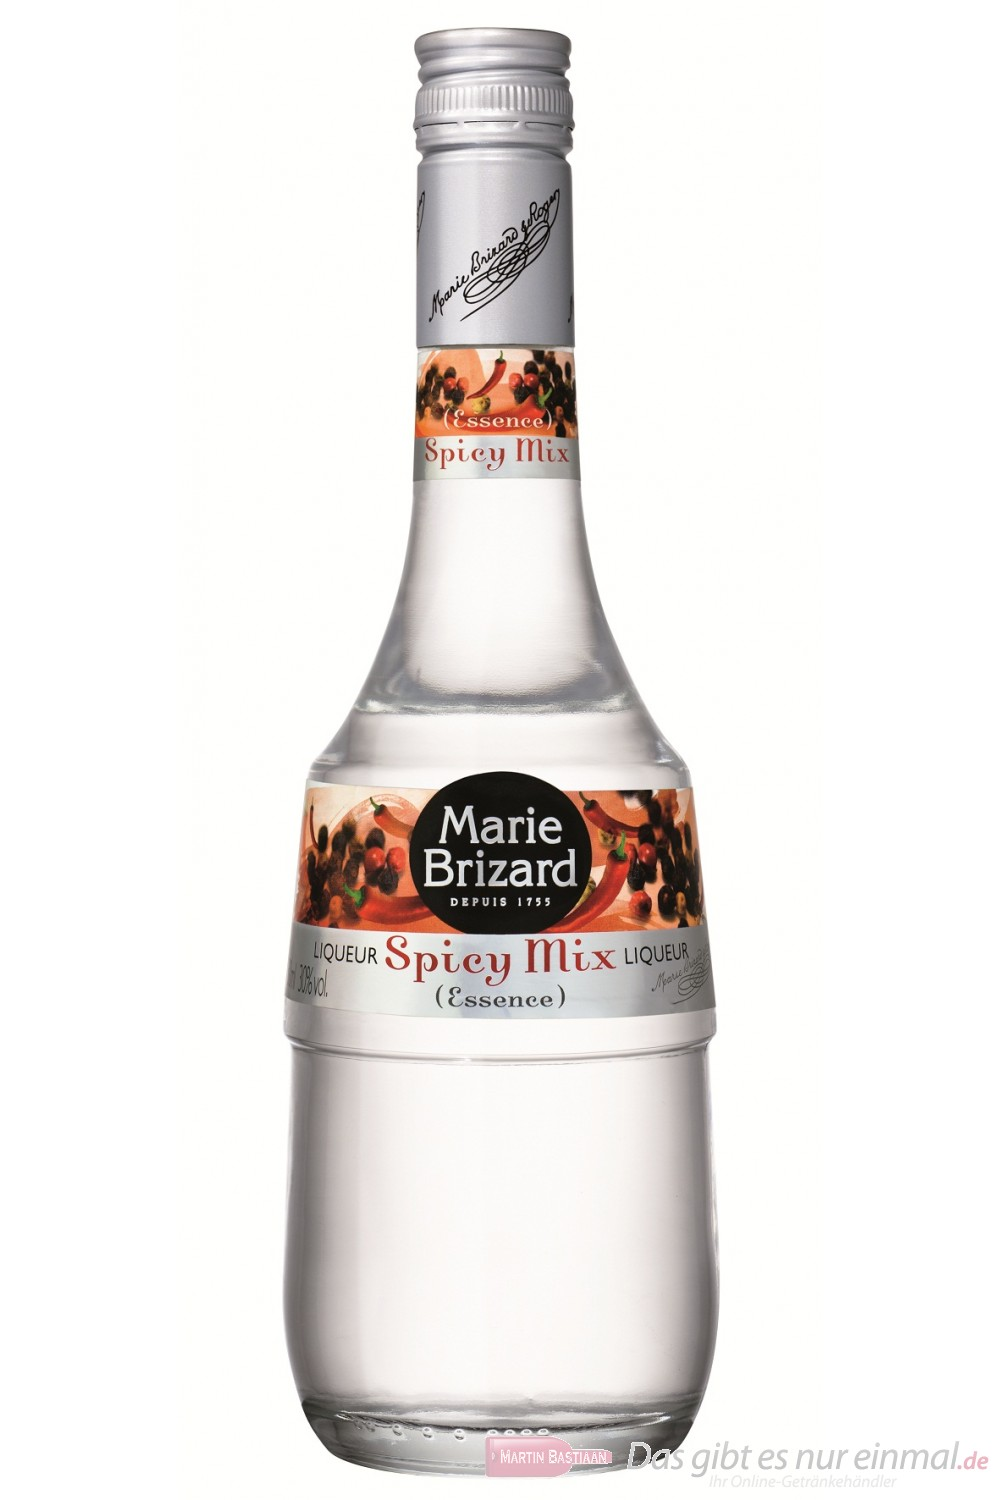 Marie Brizard Essence Spicy Mix  30% 0,5l Flasche